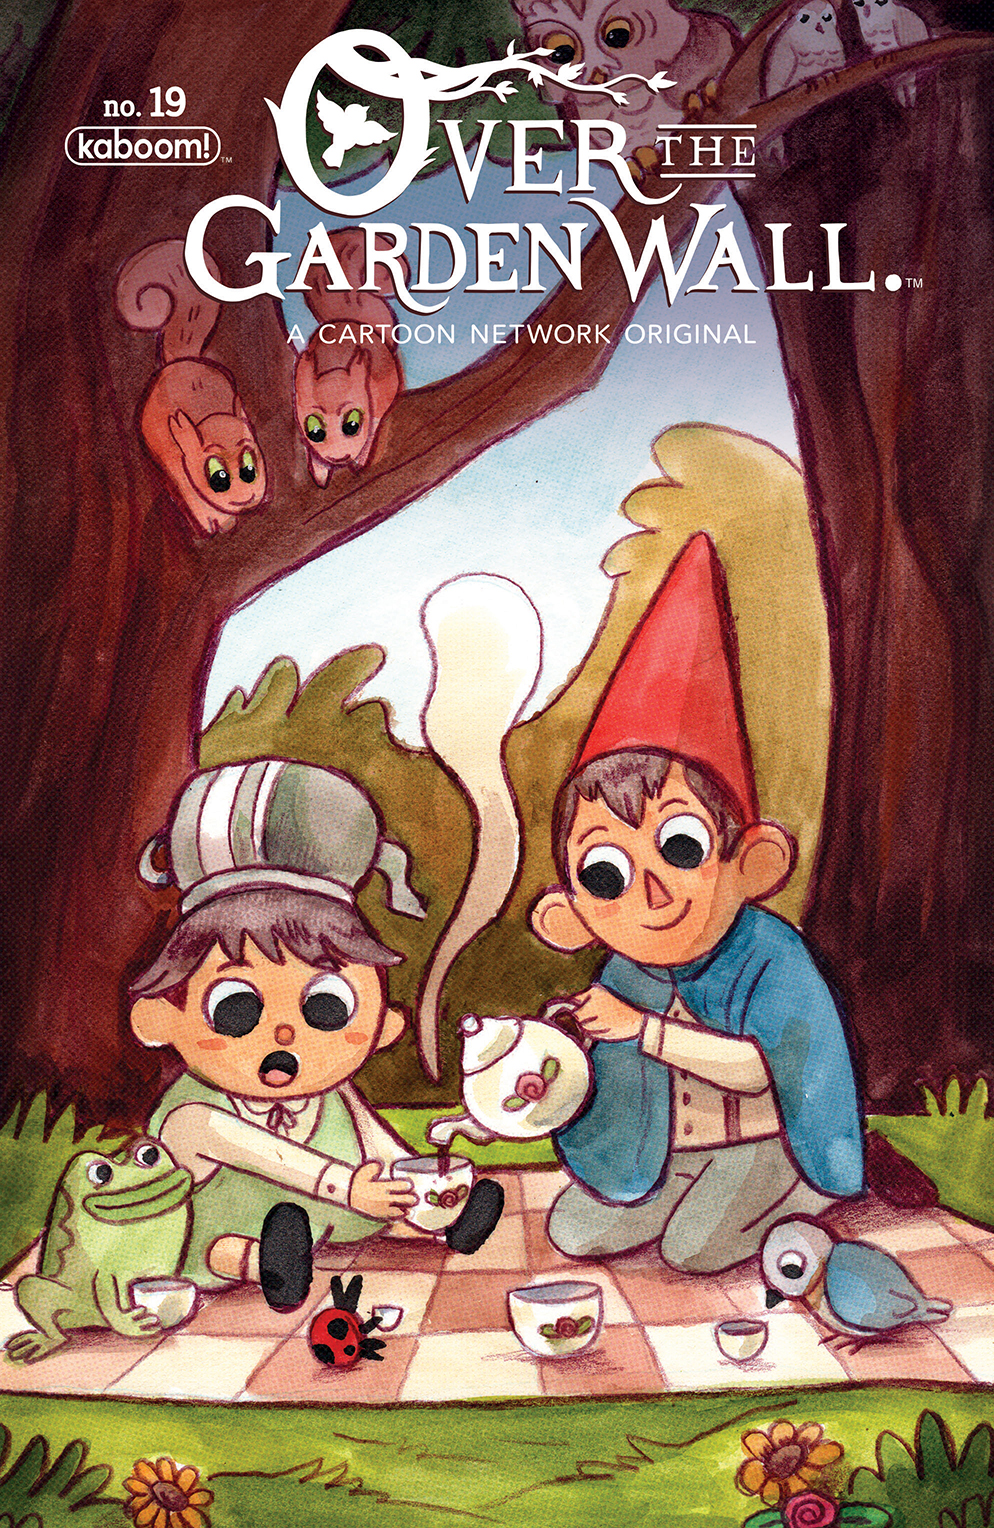 Over the Garden Wall #19